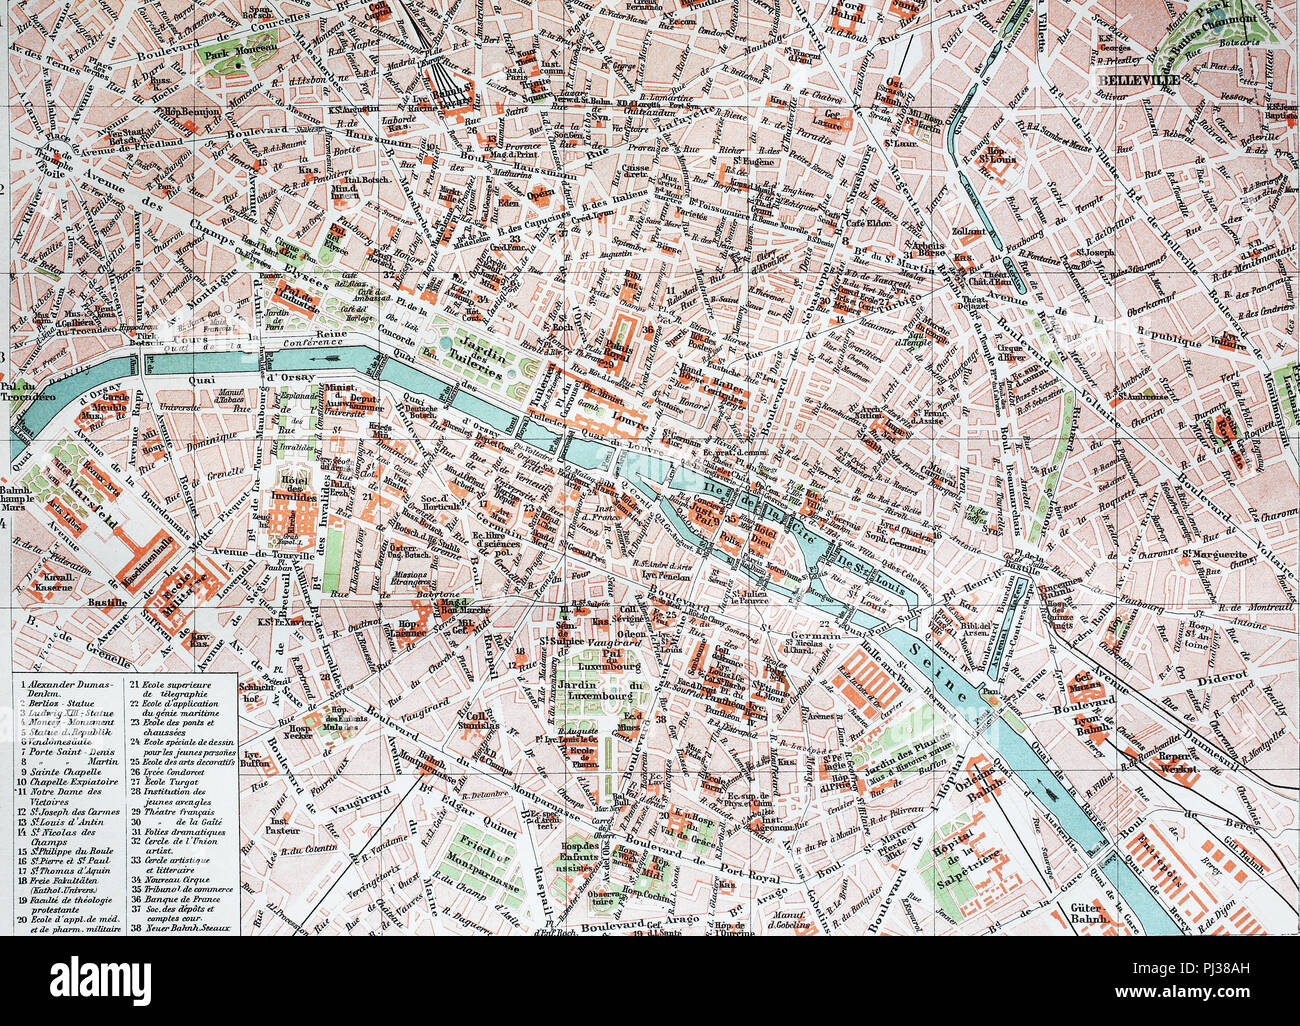 street map of Paris, 1890, France, digital improved reproduction of ...